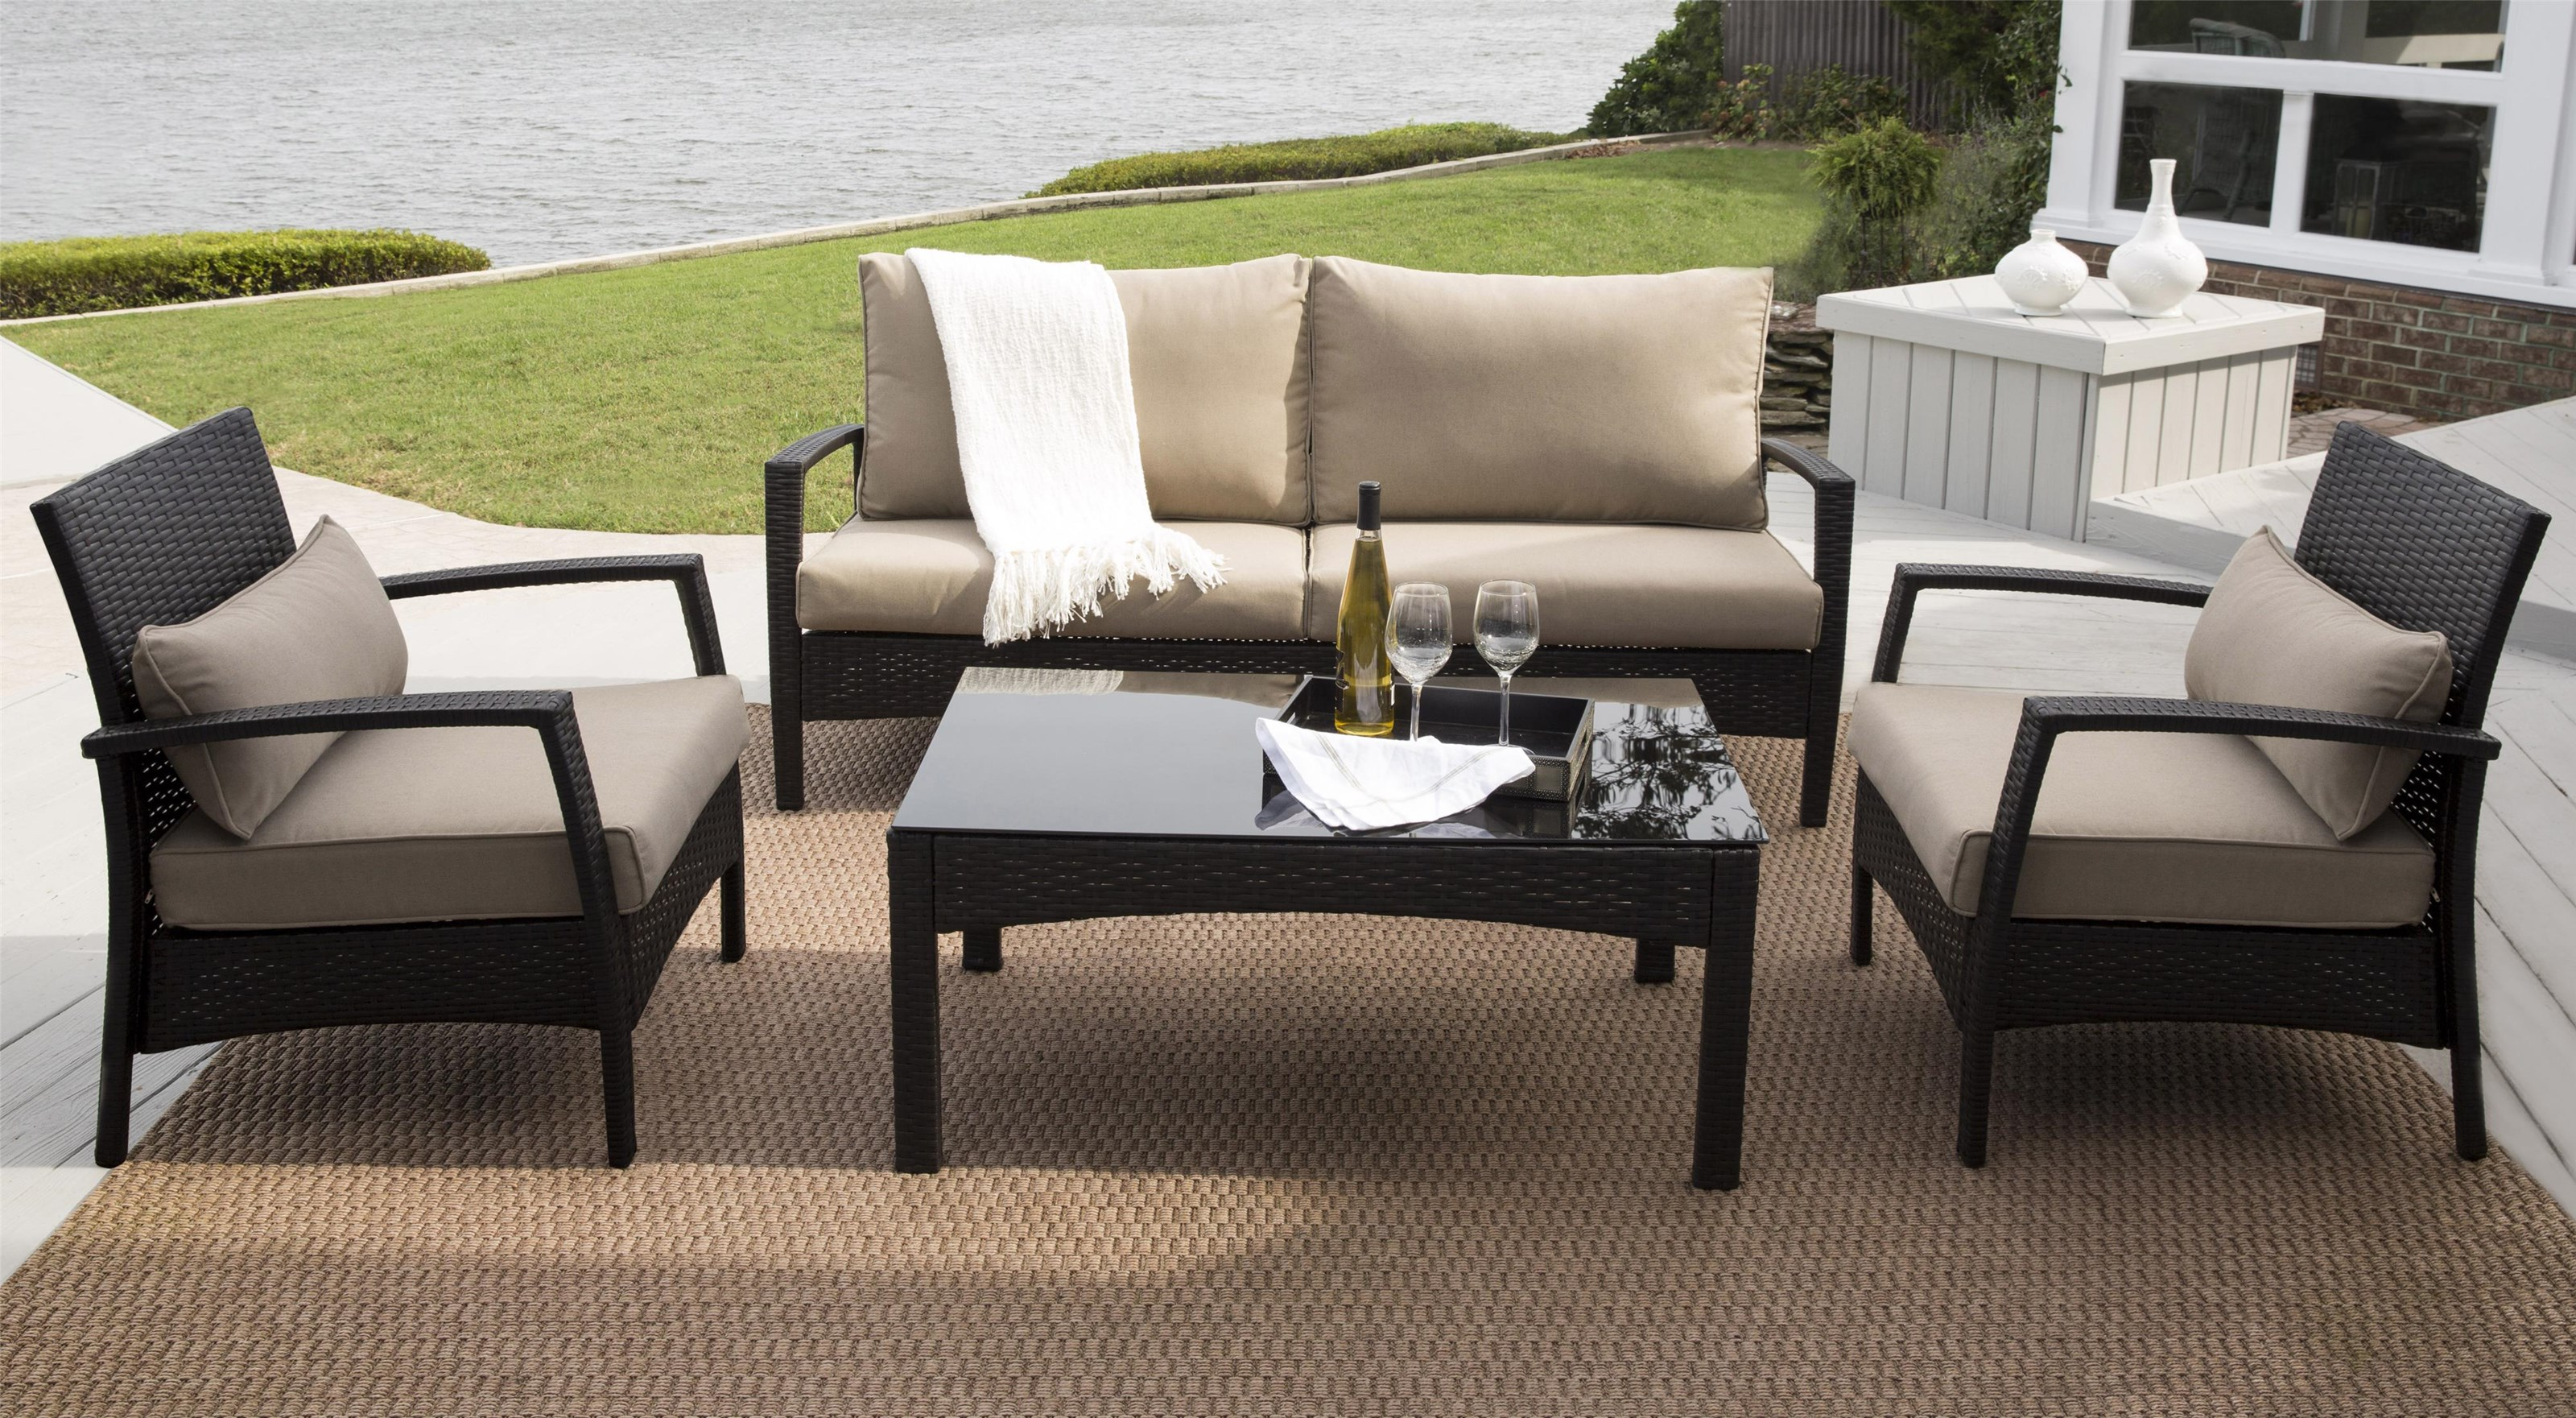 Morris Home Antigua Antigua Outdoor Sofa, 2 Chairs And Table - Item Number:  974341053